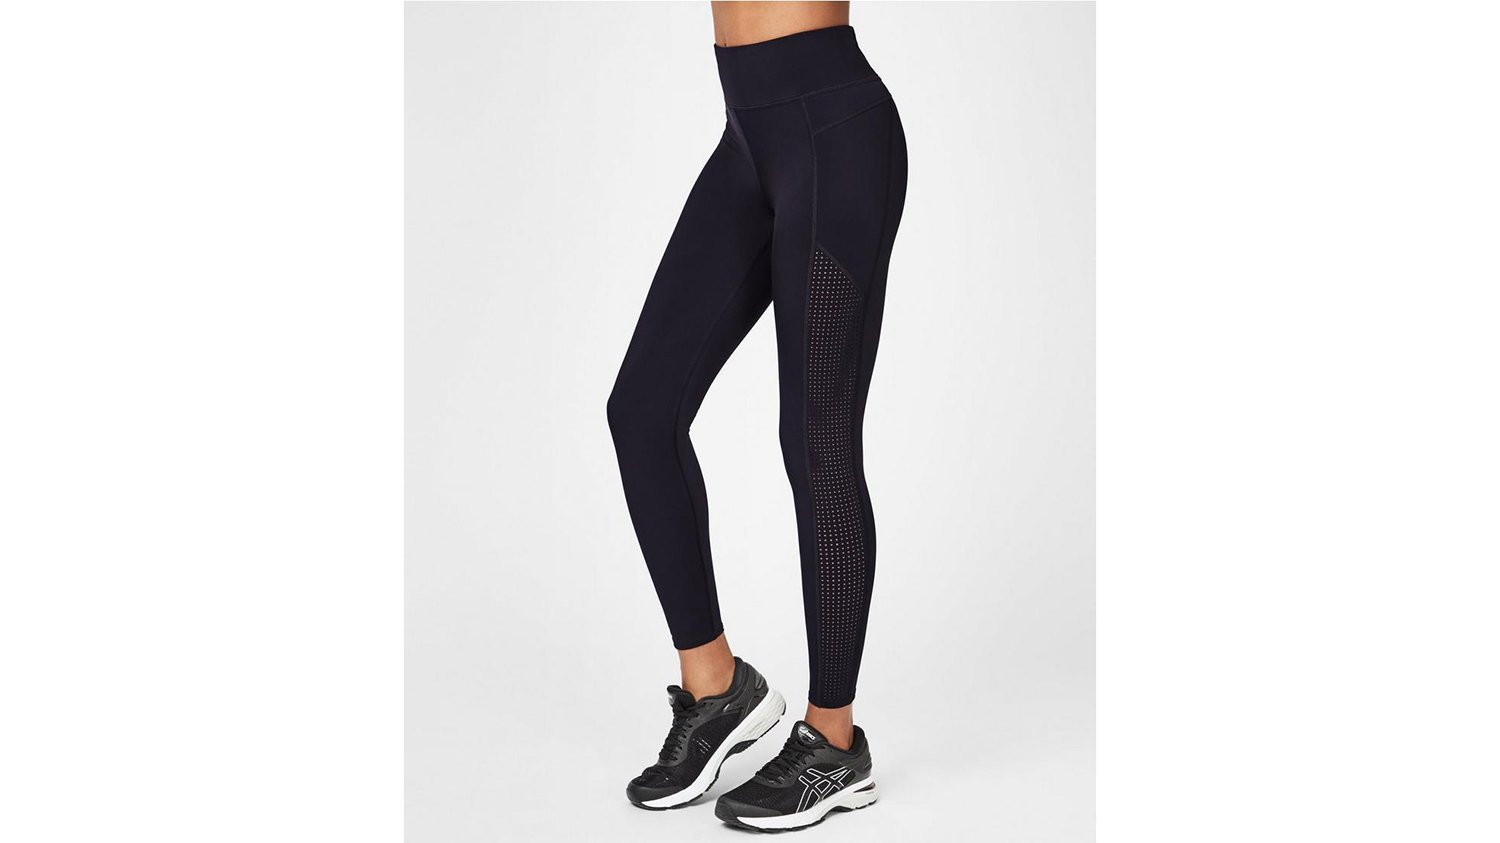 bb4cc3e992f9a These high-performance leggings may be pricey, but they've been in  development for 20 years and combine an ultra-lightweight fabric with  sweat-absorbing ...